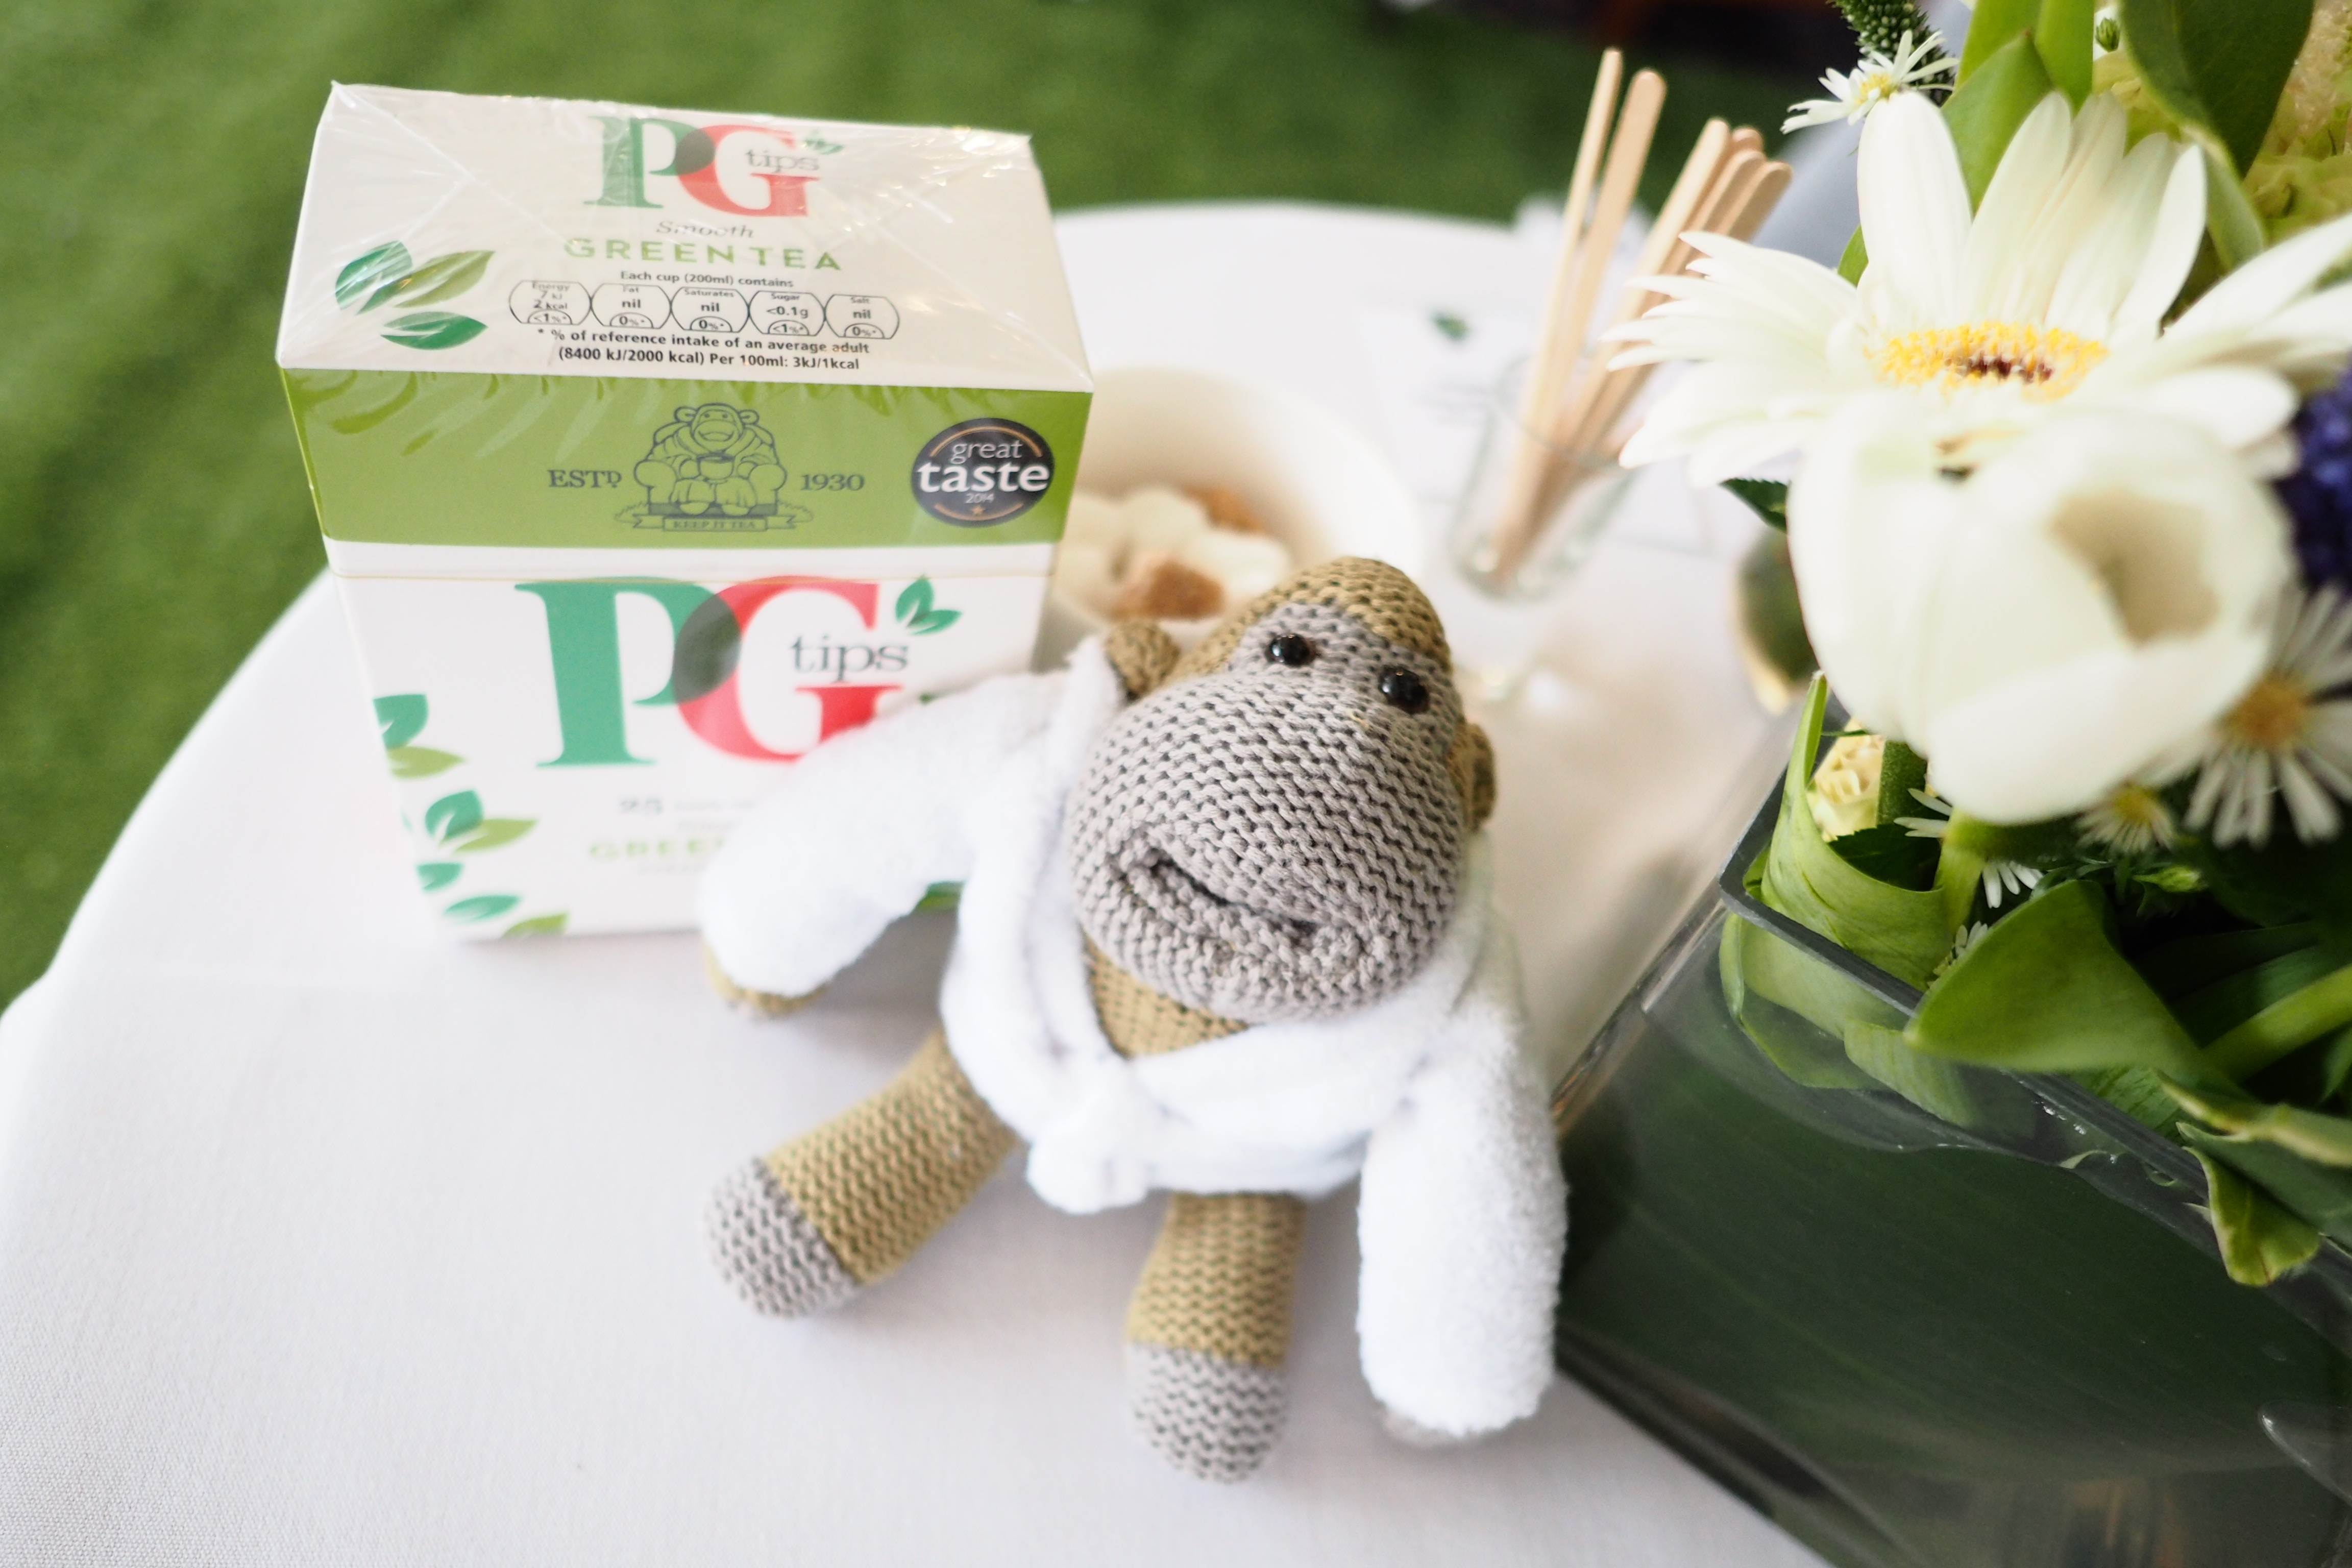 PG tips Green Tea Monkey